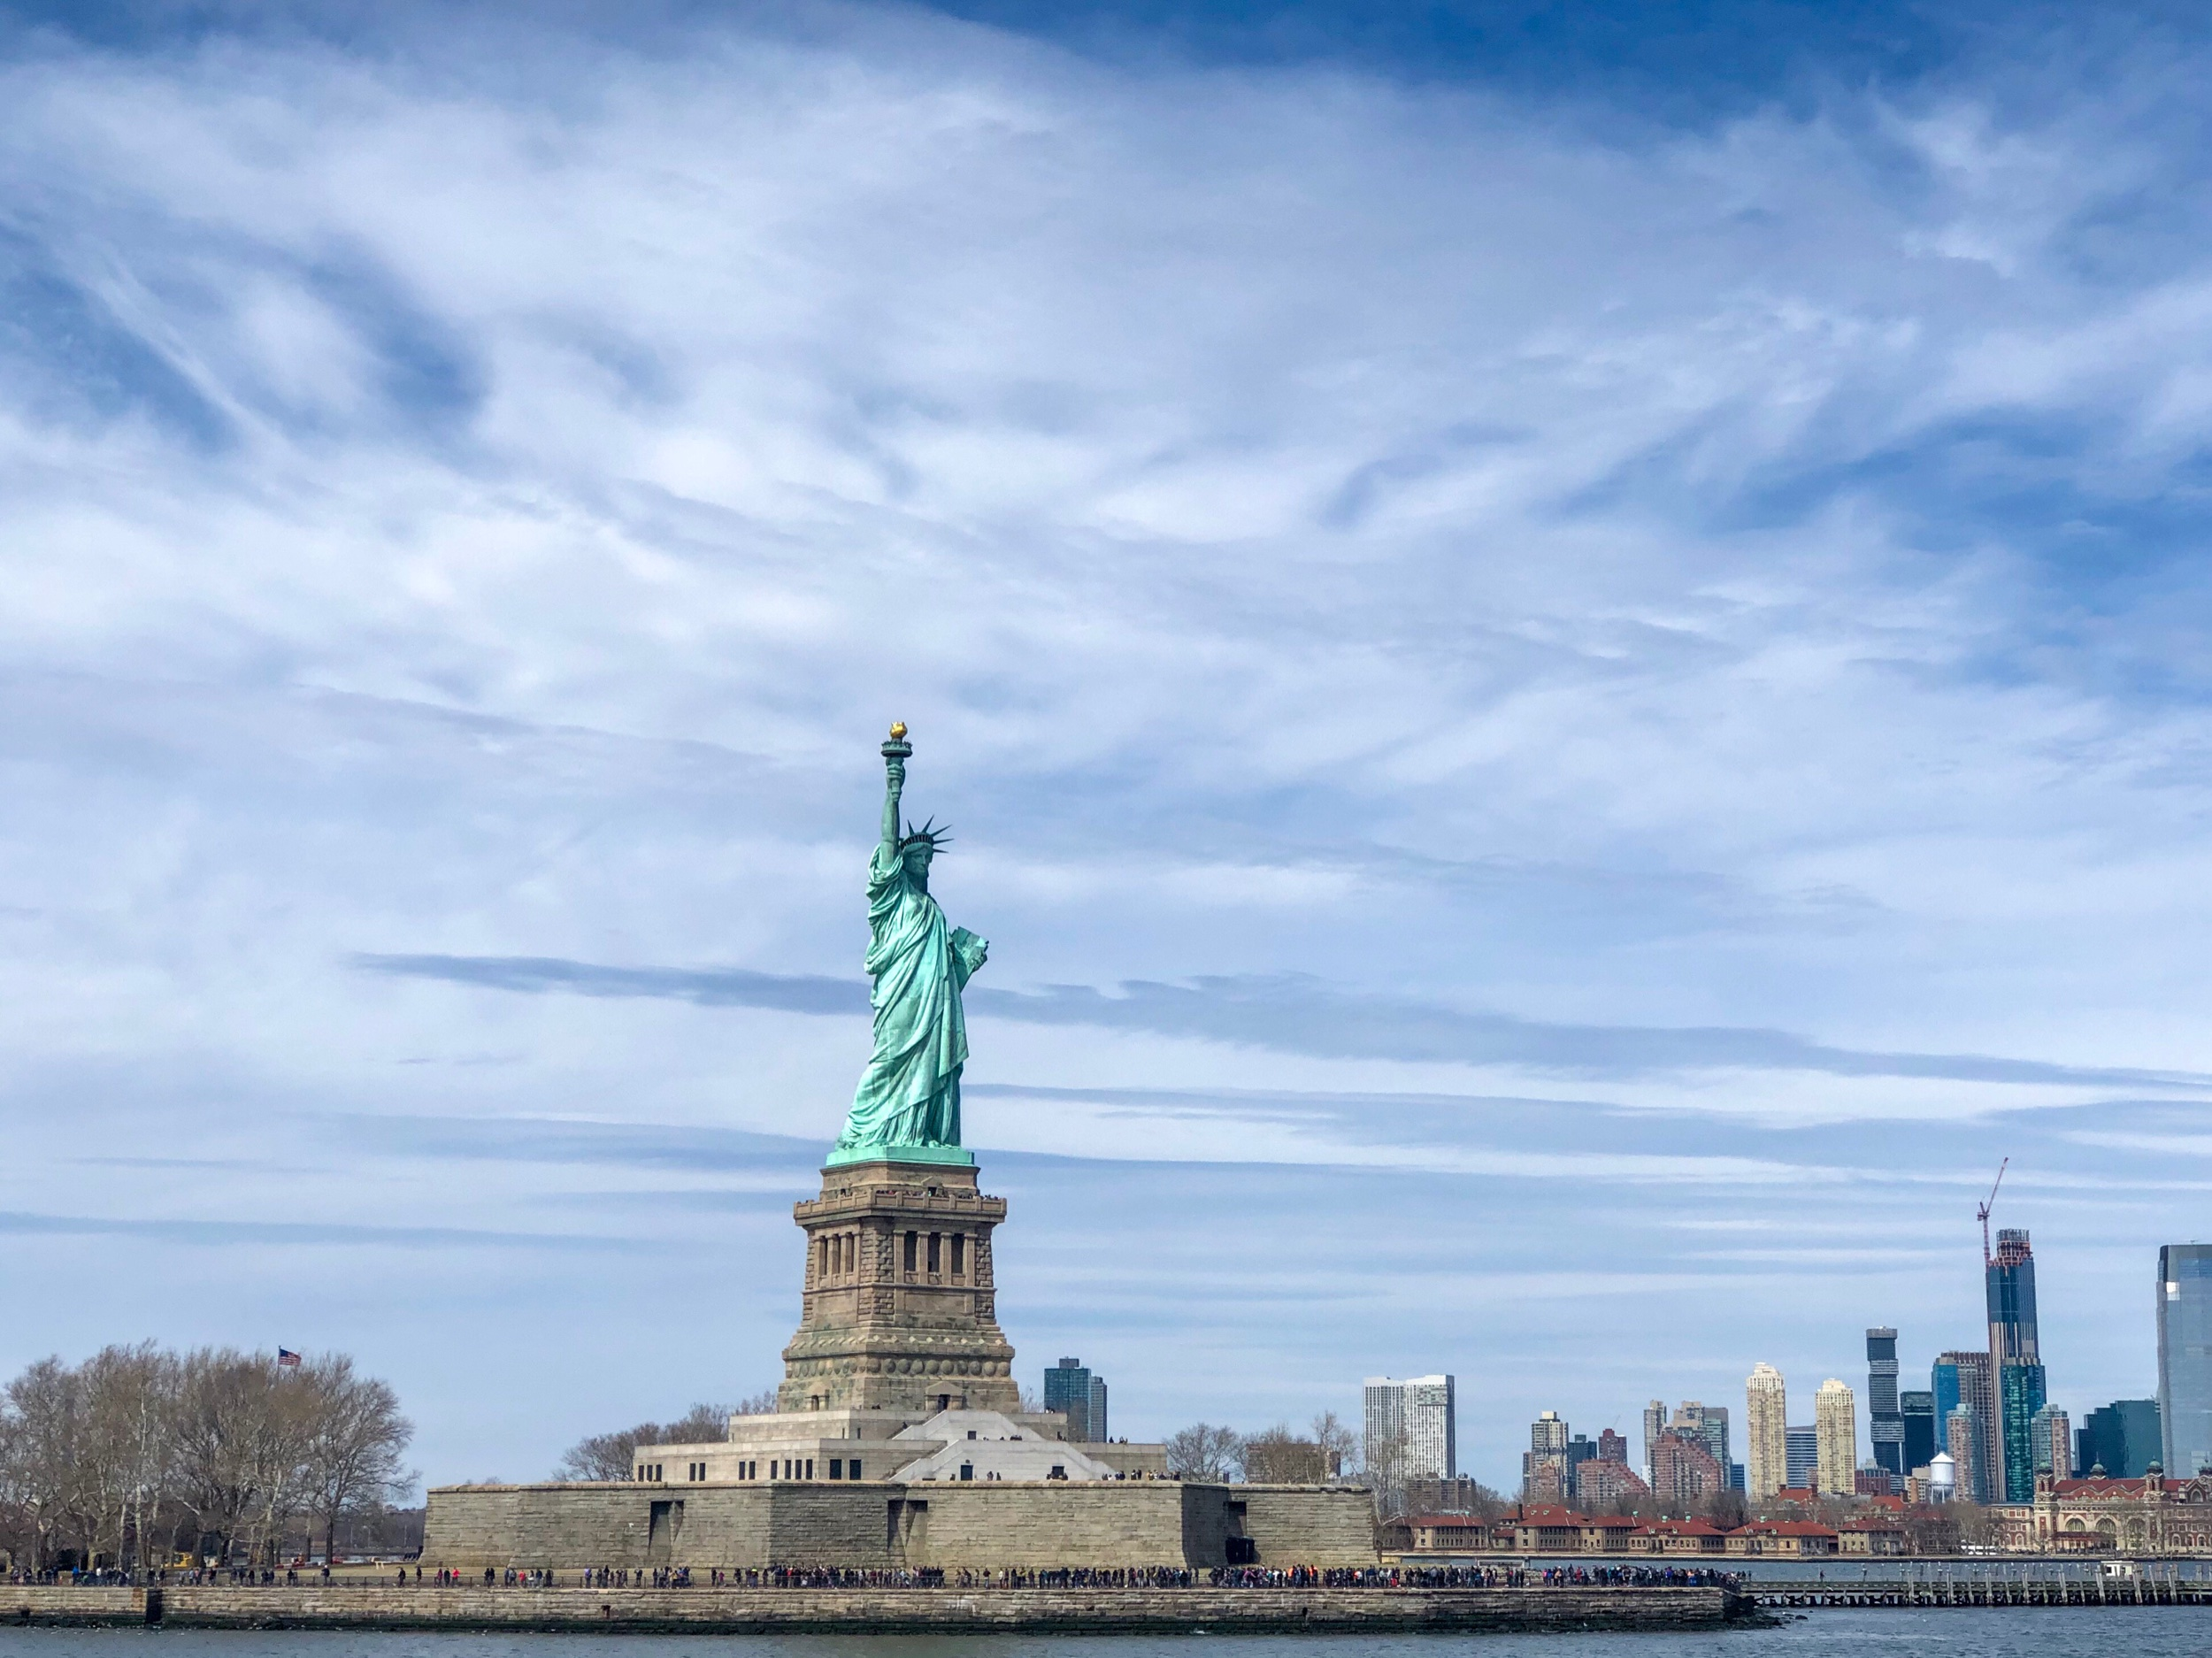 Take Staten Island Ferry for views of the Statue of Liberty | free - Free commuter ferry which runs 24 hours from South Terminal Lower Manhattan to St George Terminal Staten Island. Take advantage of the opportunity to see New York's city skyline and the Statue of Liberty at day or night.